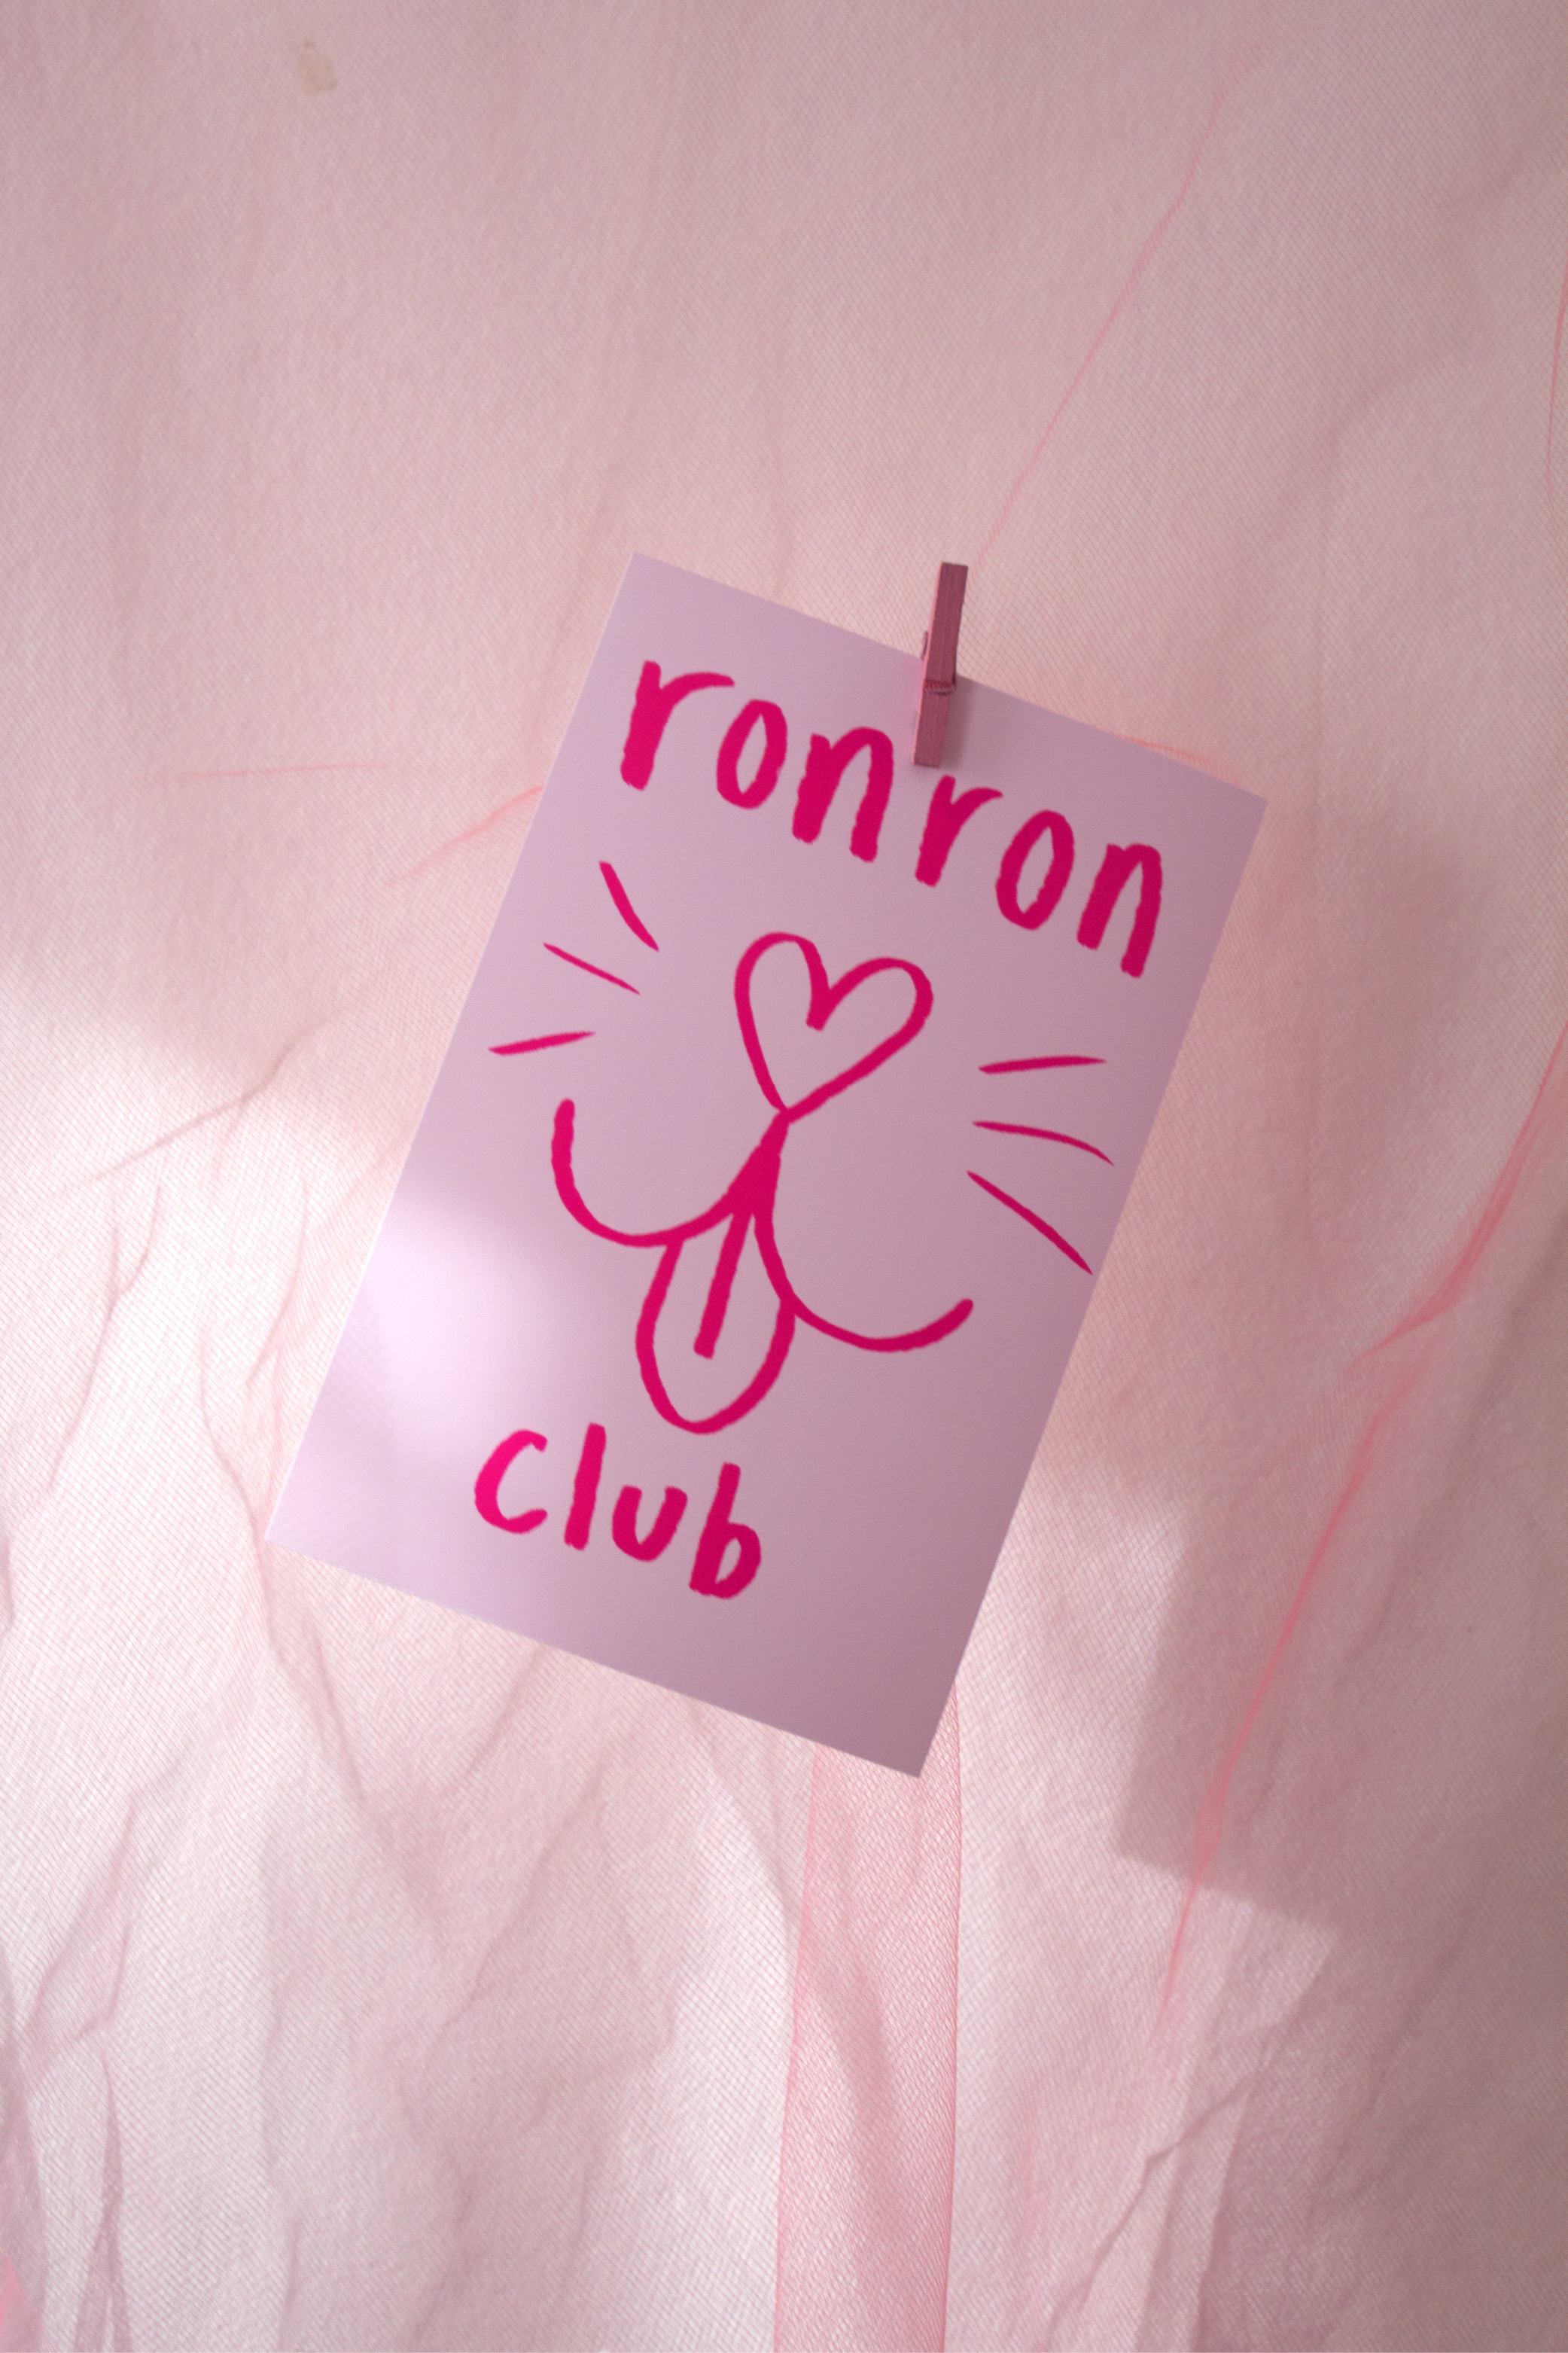 ronron club - small print 4x6